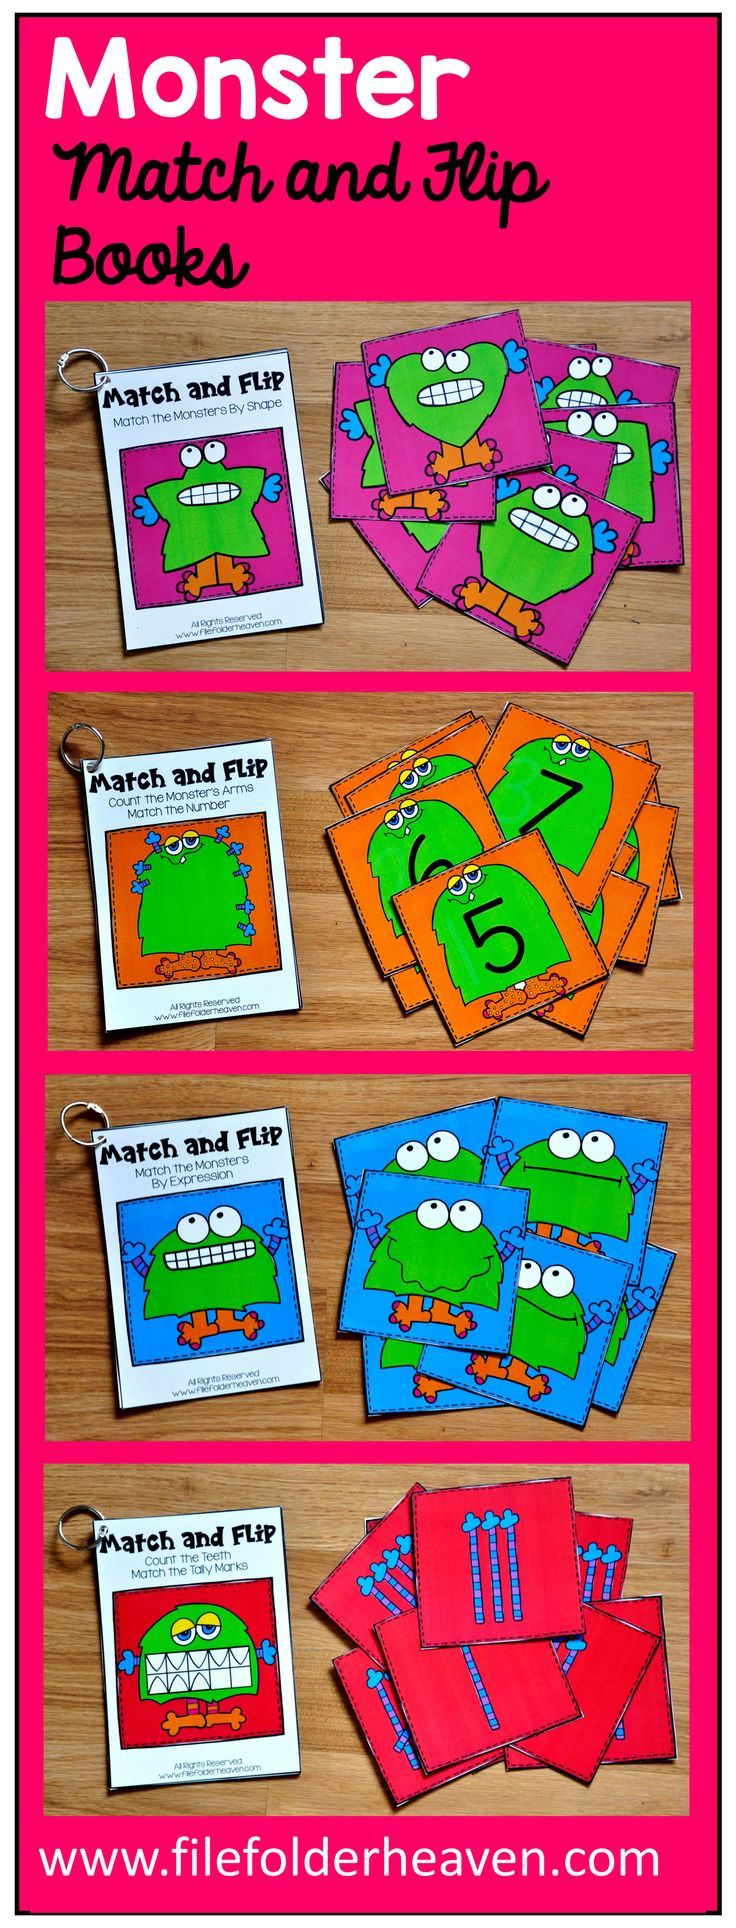 These Monster Matching Activities include 4 Monster Match and Flip Books that focus on basic matching skills. In these activities, students work on matching picture to picture (or by facial expression), matching by counting and matching by shape.  There are four Match and Flip Books included in this download.